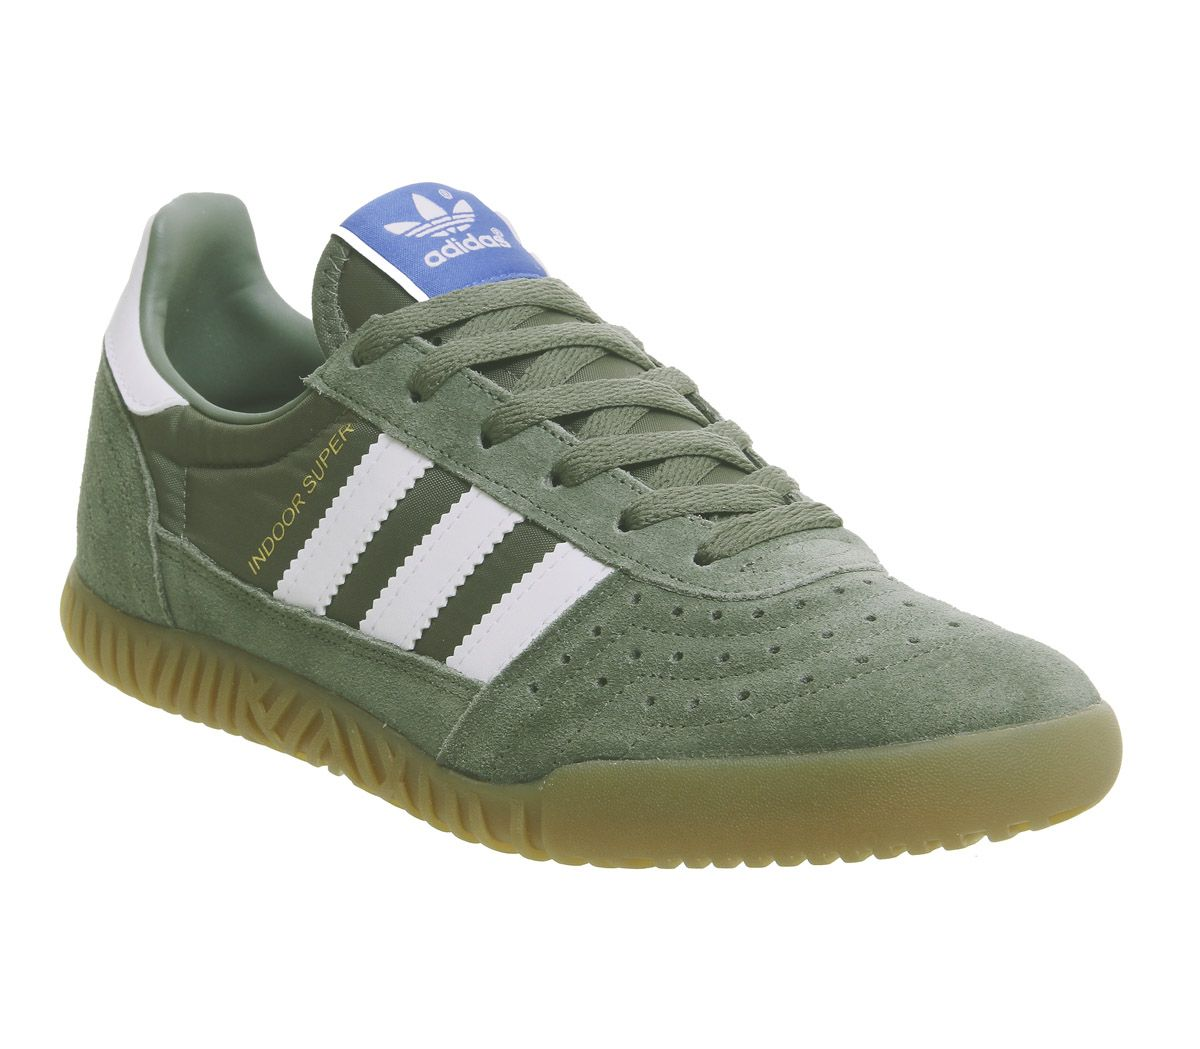 0ef4a511ac3 adidas Indoor Super Trainers Base Green White Gum - His trainers